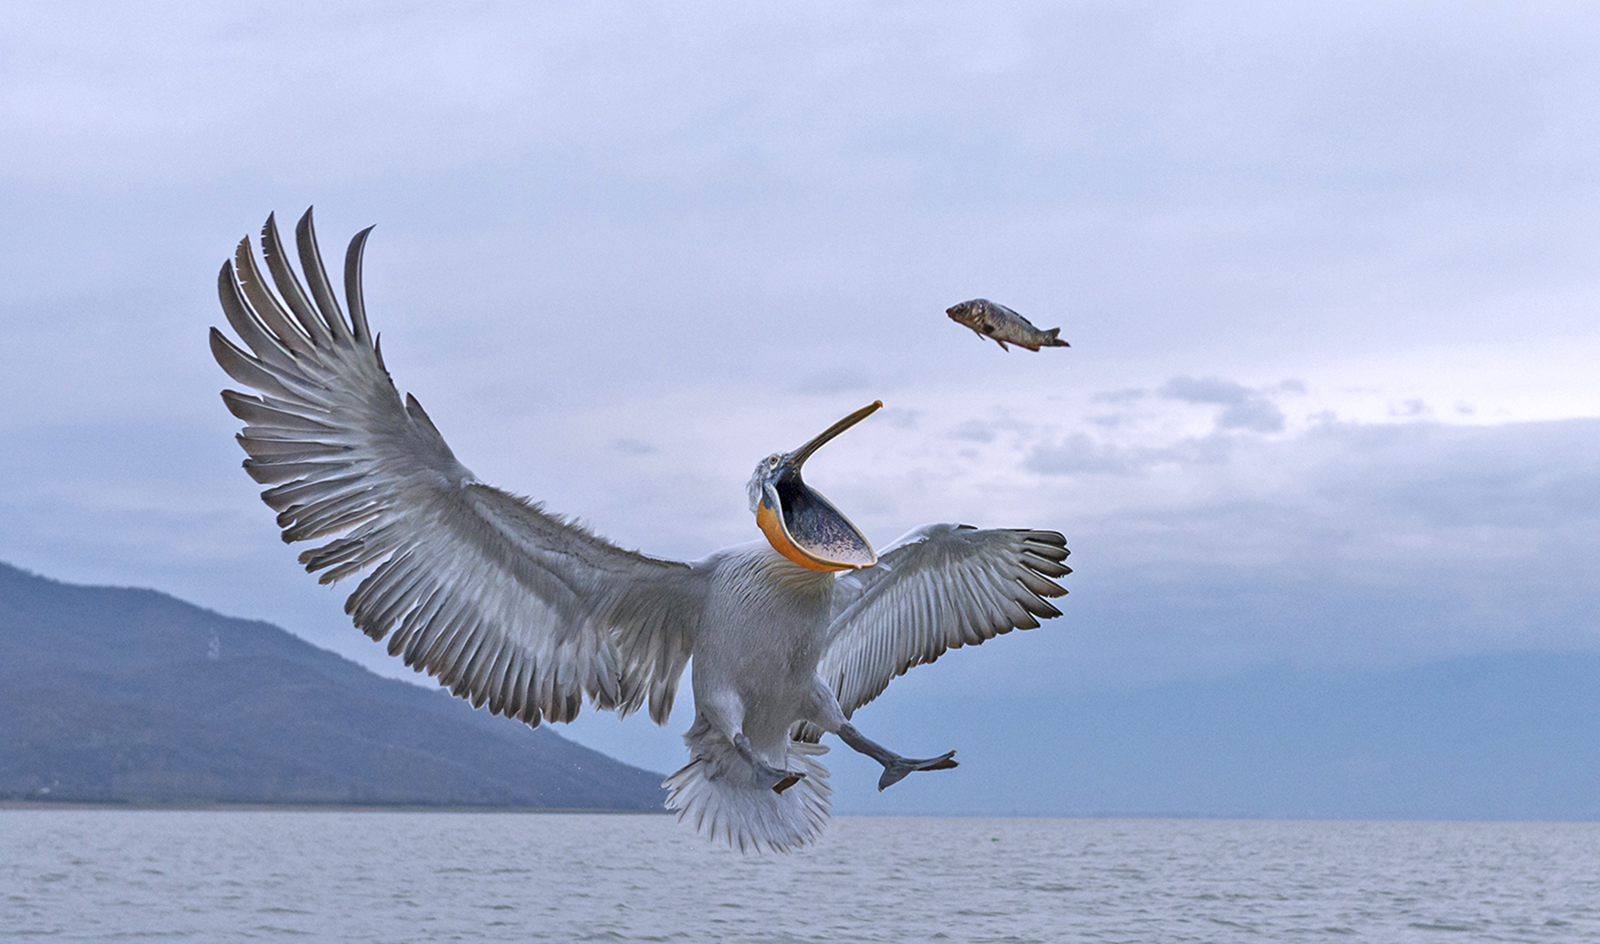 Pelican_Catch_2%255B1%255D.jpg